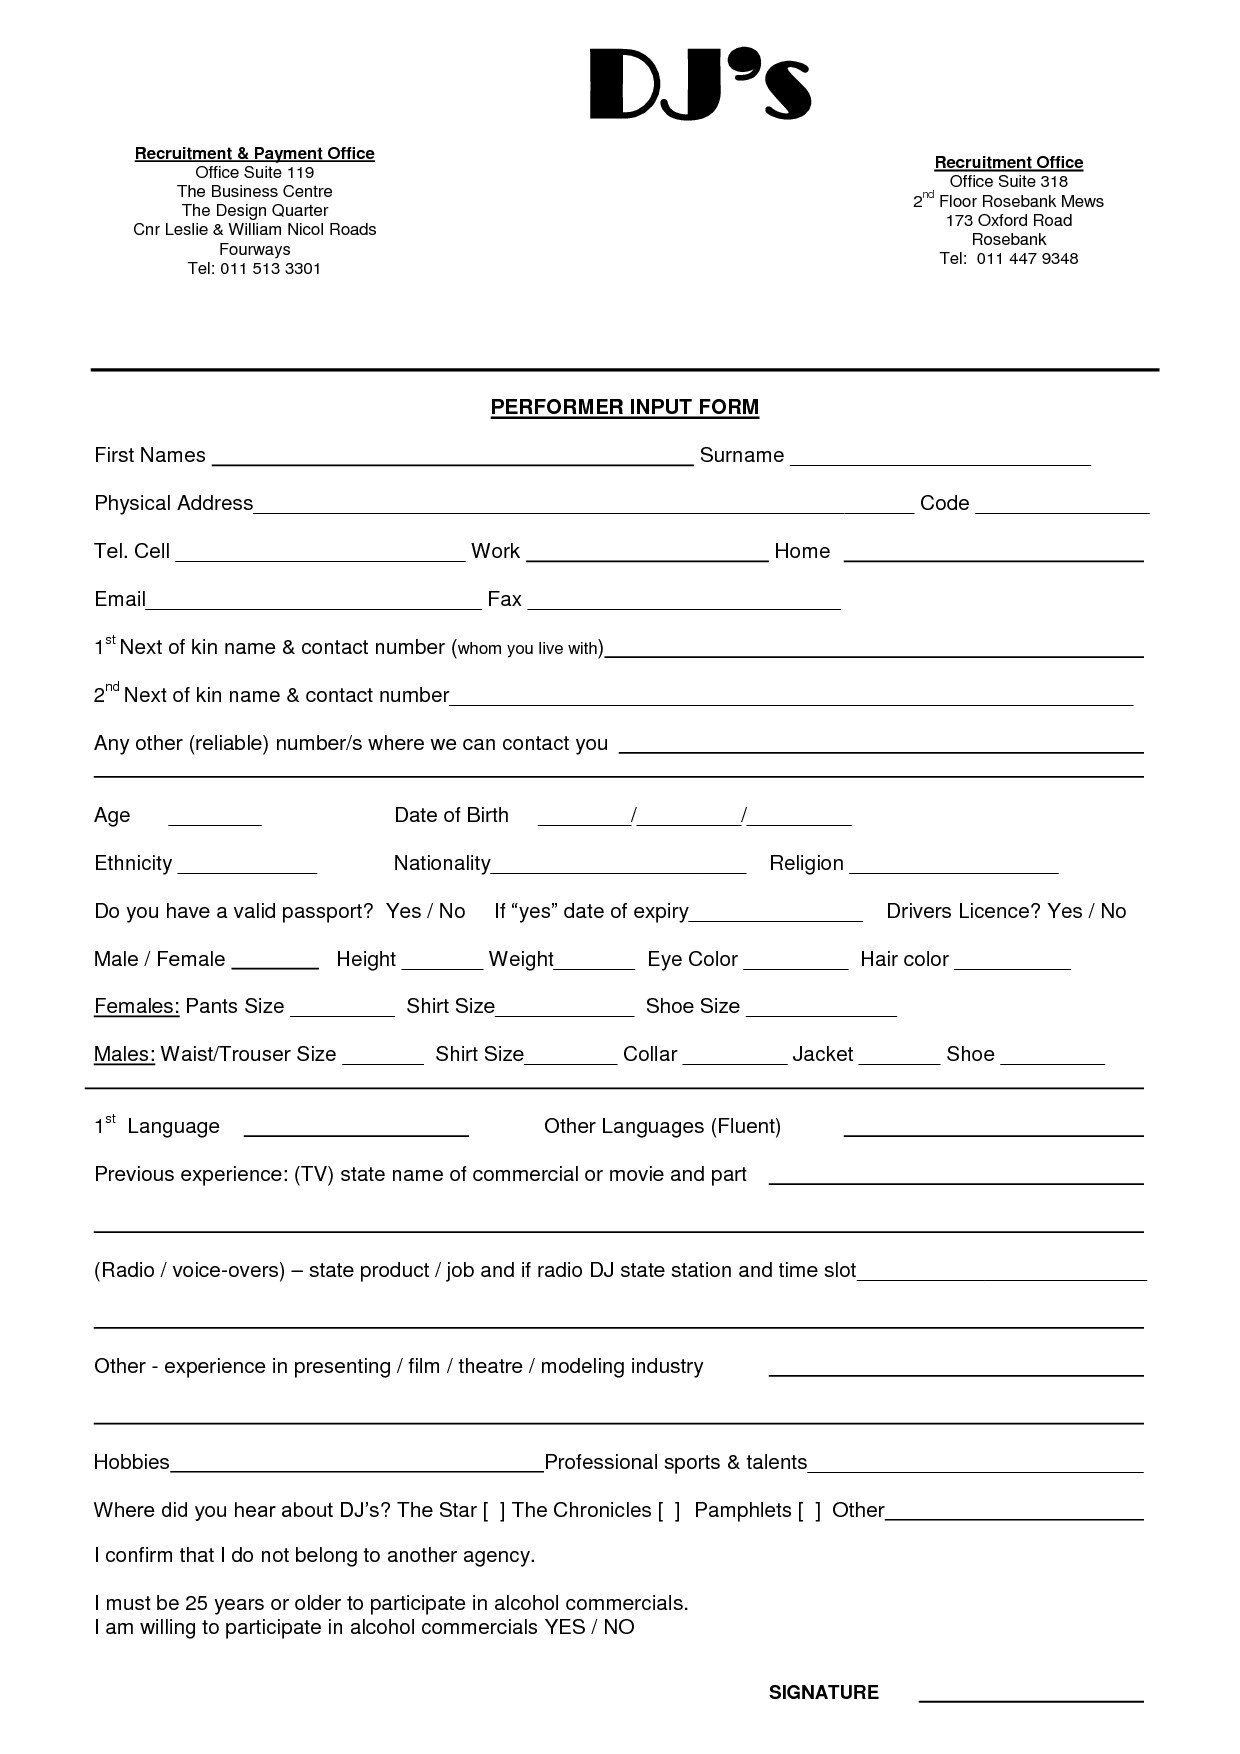 Dj Contract Template Pdf Wedding Dj Contract Templateregularmidwesterners